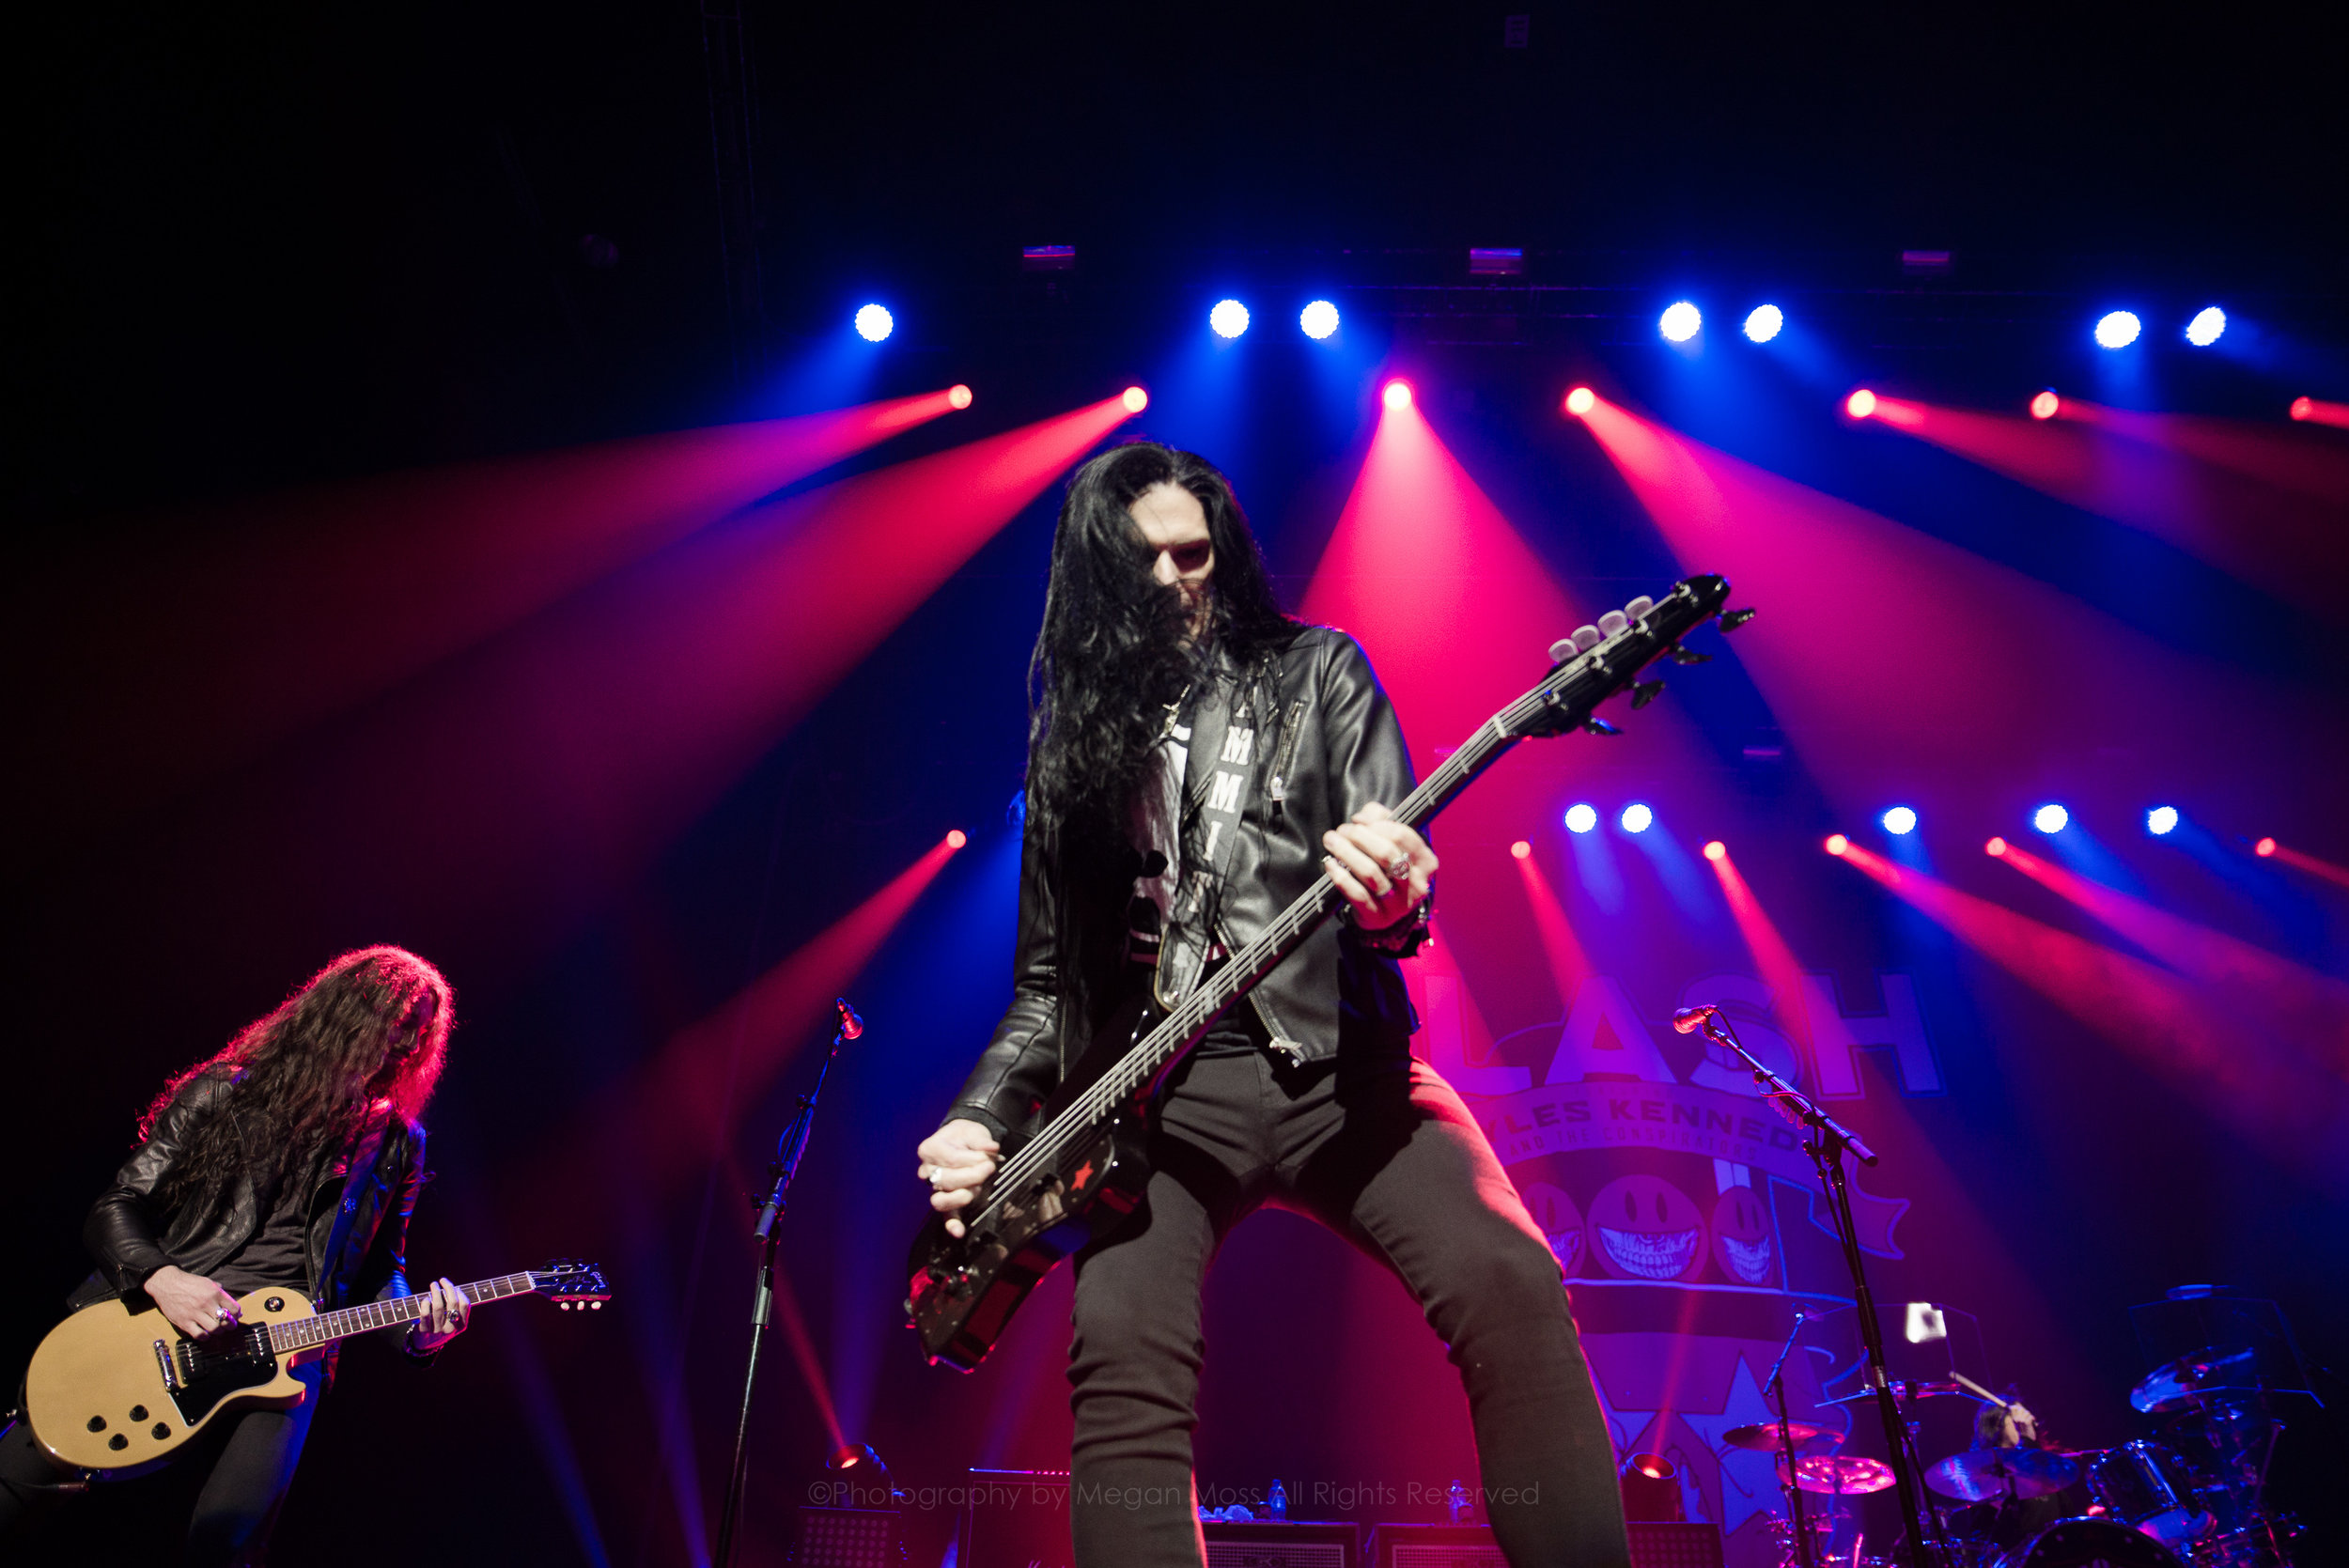 SLASH&MKK_PhotoMeganMoss-8.jpg